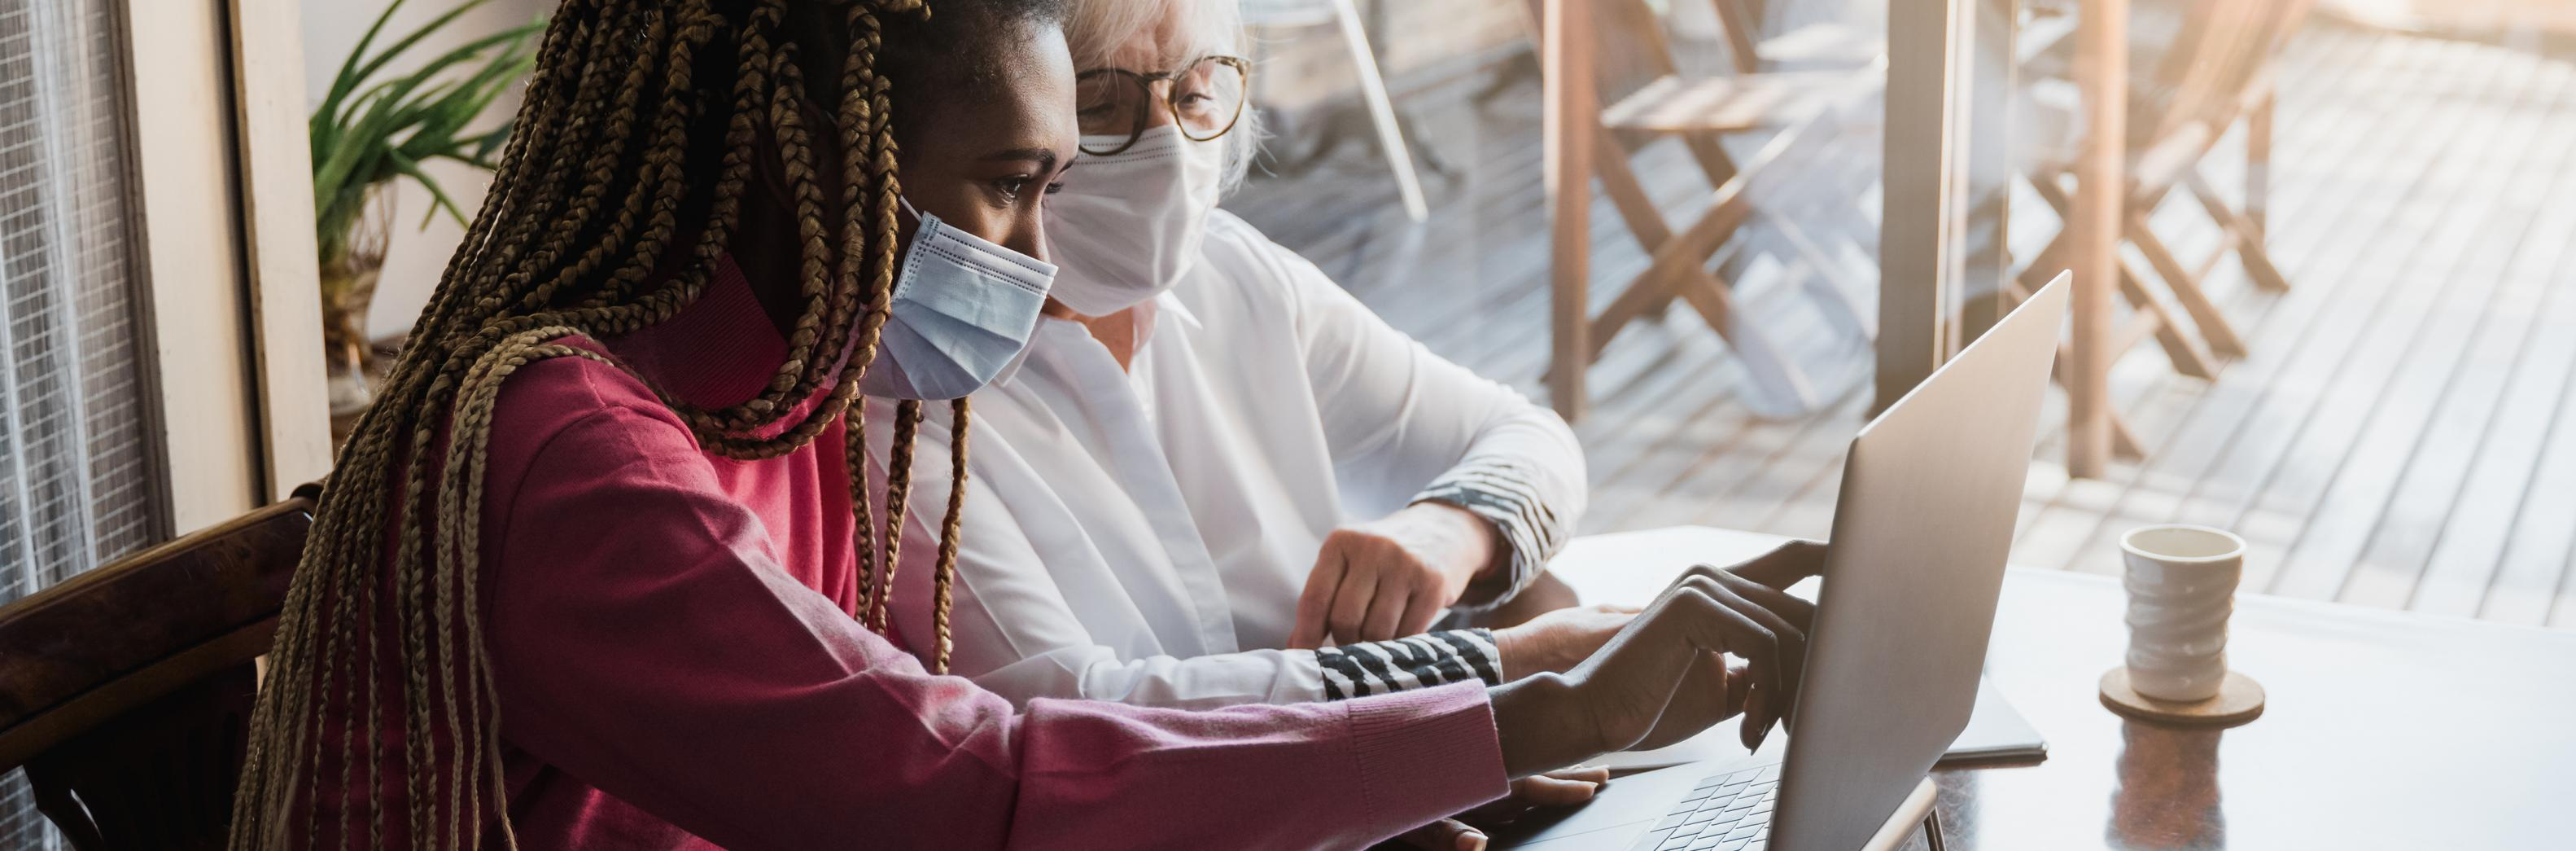 A dark-skinned woman with long brown hair and wearing a red long-sleeved shirt points to a laptop screen while a light-skinned woman with gray hair in a white, long-sleeved shirt watches. Both are wearing masks. Credit: Adobe Stock.